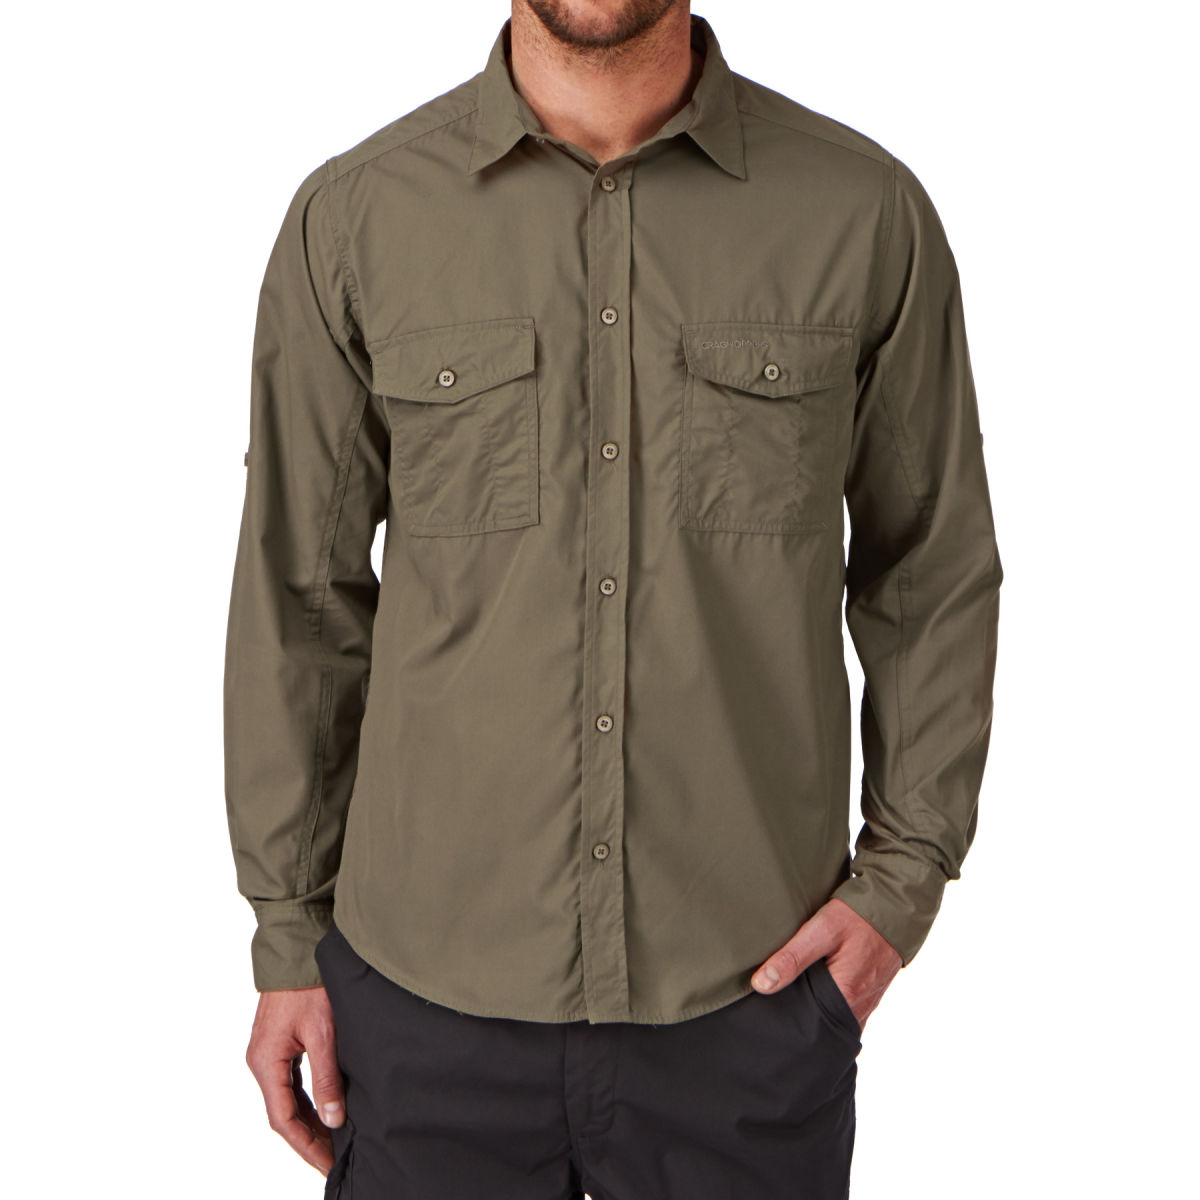 Craghoppers Mens Kiwi Long-Sleeved Shirt